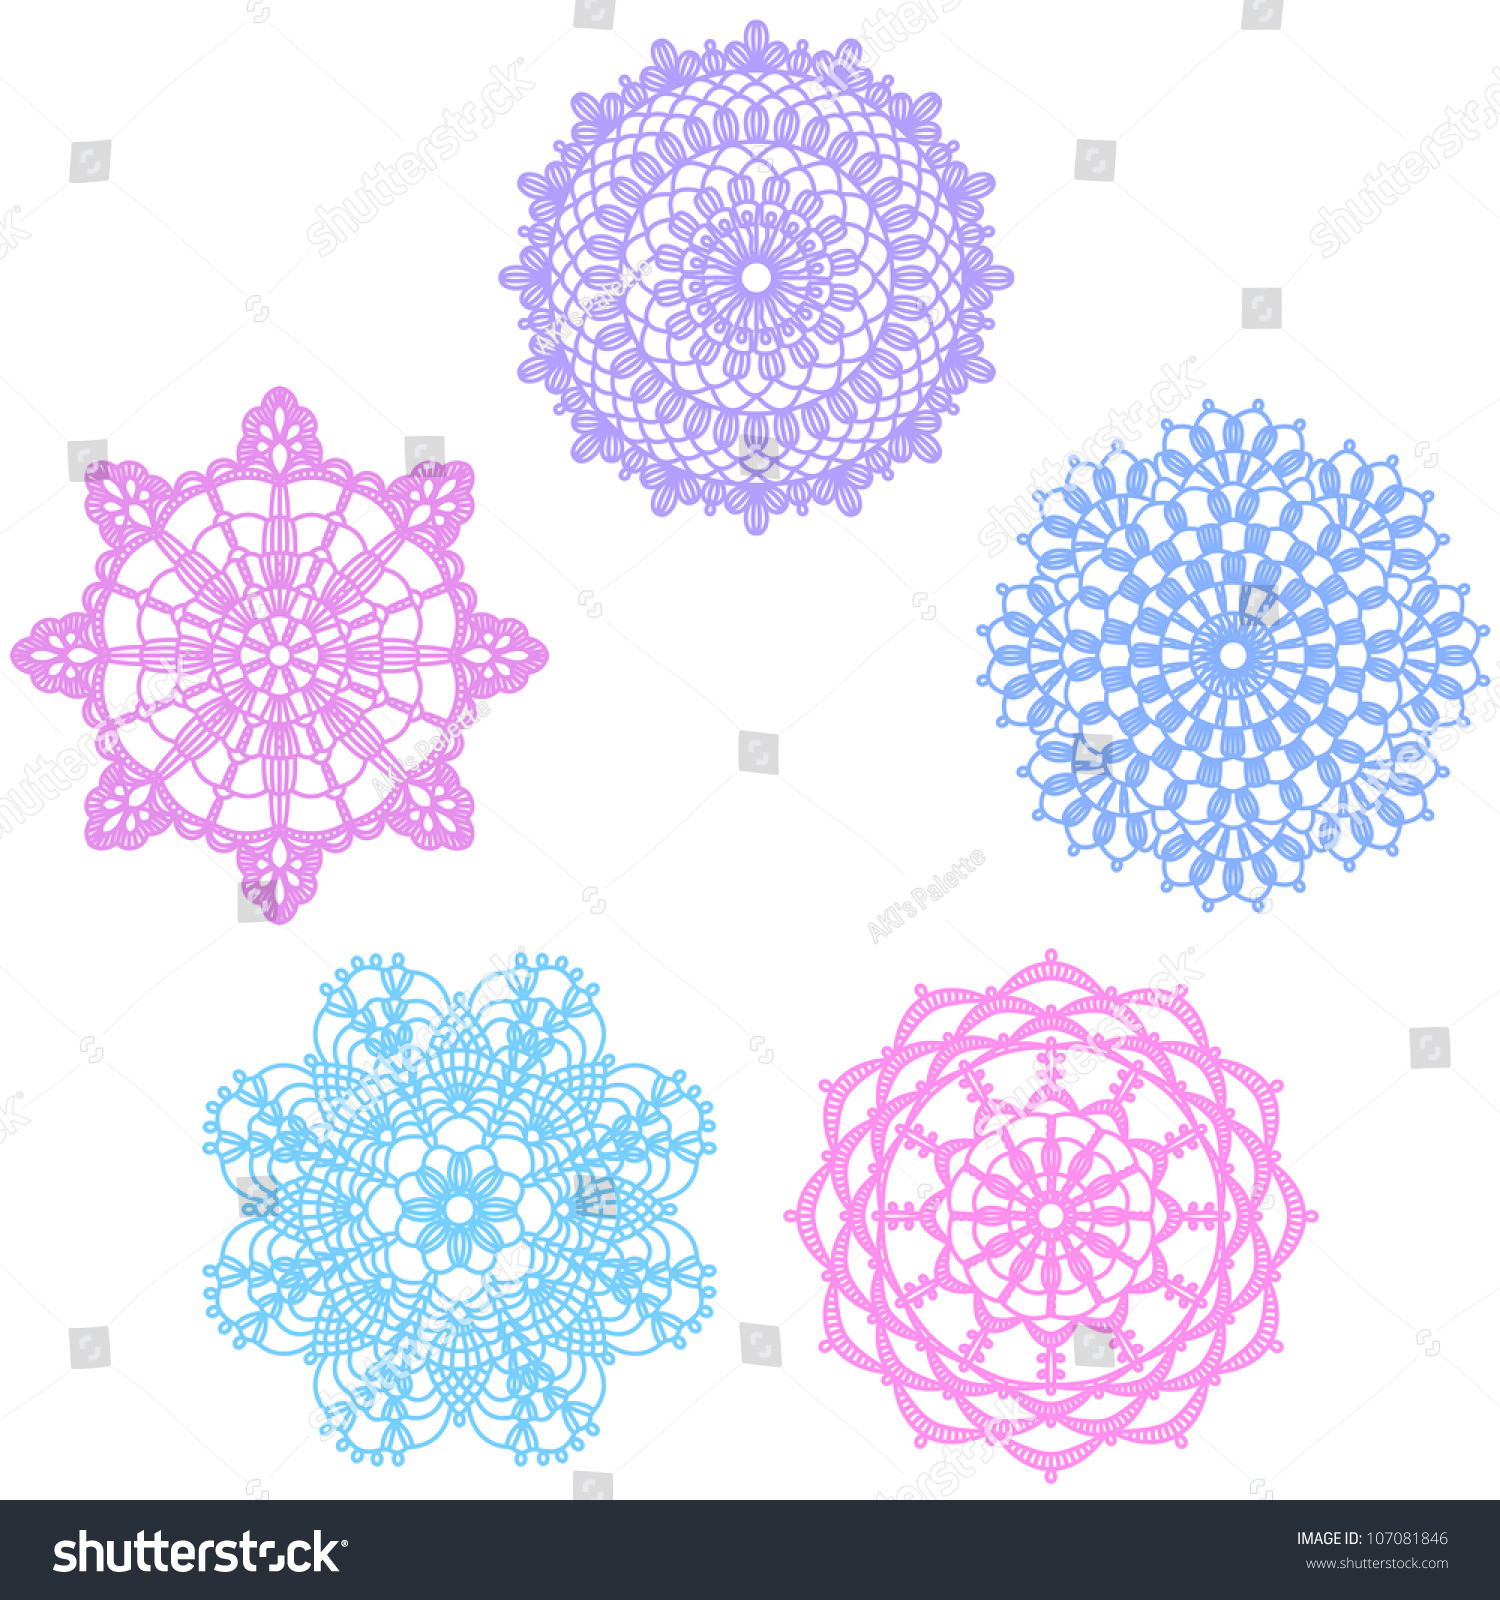 Crocheting Vector : Crochet Lace Pattern Stock Vector Illustration 107081846 ...